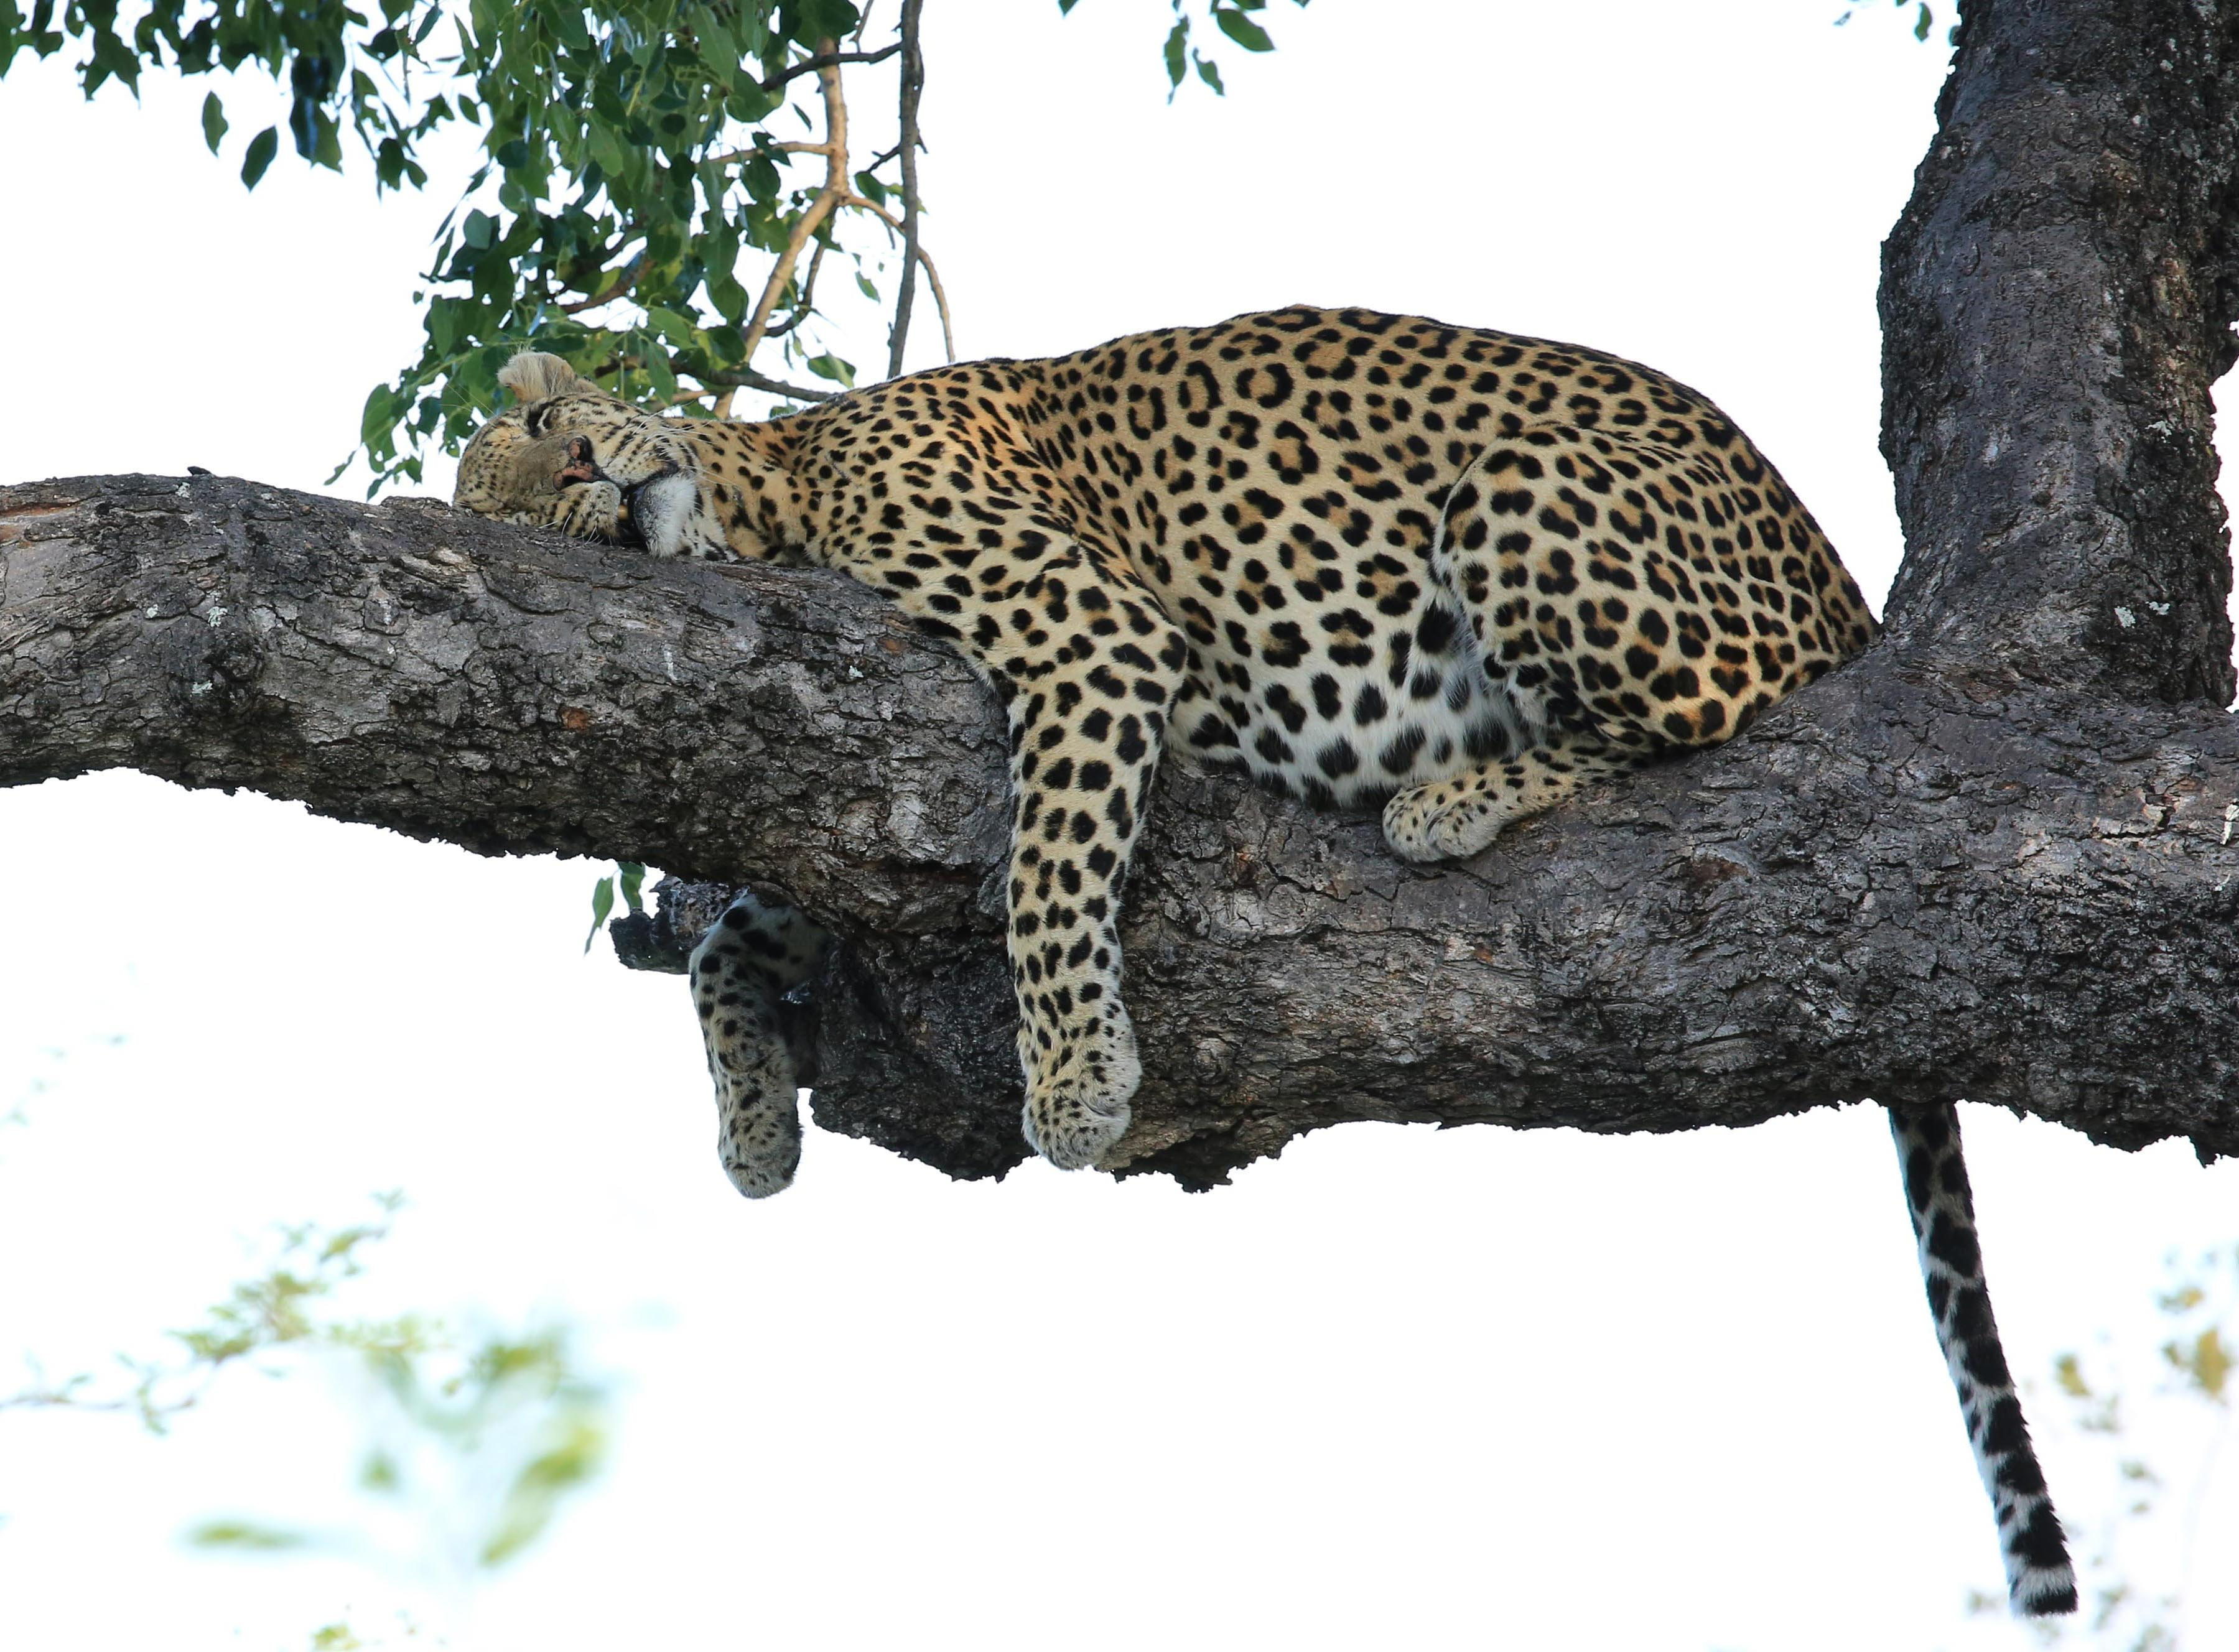 It is a Leopards Life in Kruger.